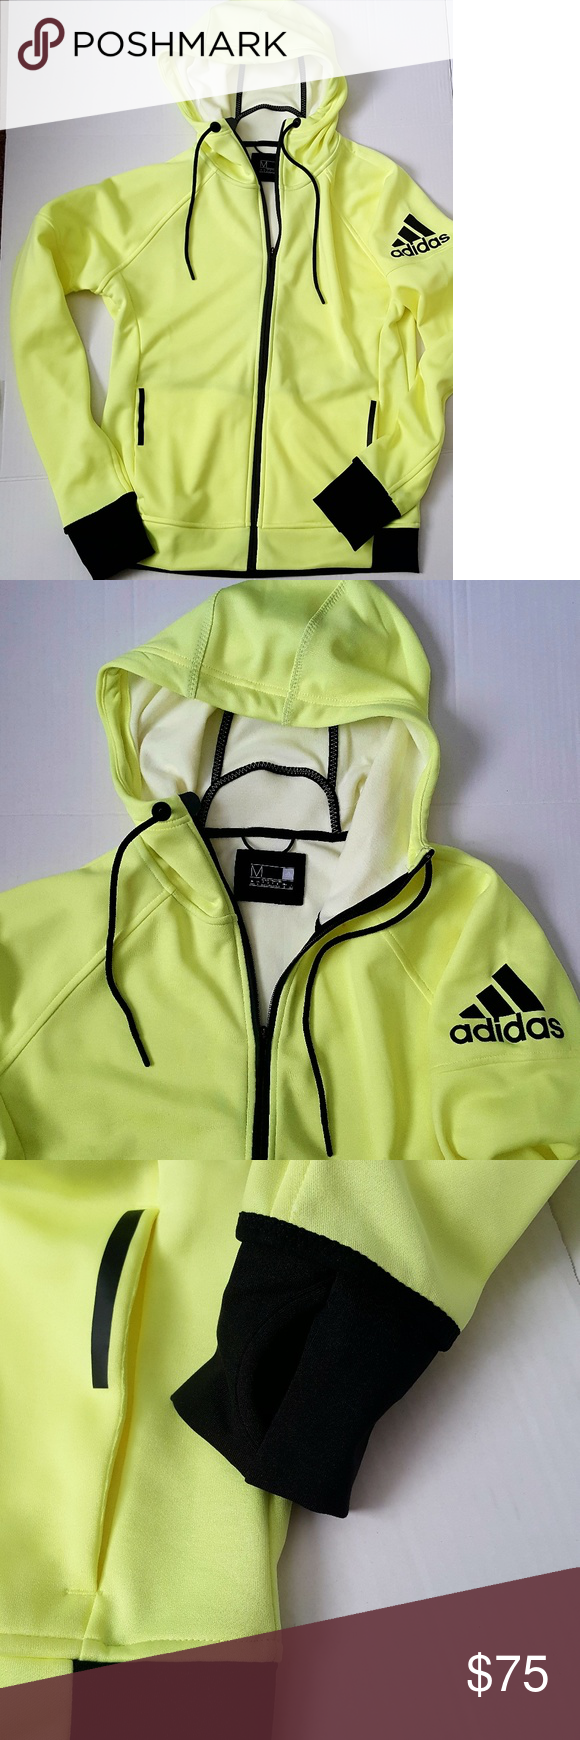 1e1640c97ab4 ADIDAS New Men s Neon Yellow Track Jacket Sz M - Adidas zip up neon yellow  hooded track jacket. - Great contrast colors of neon yellow and black.